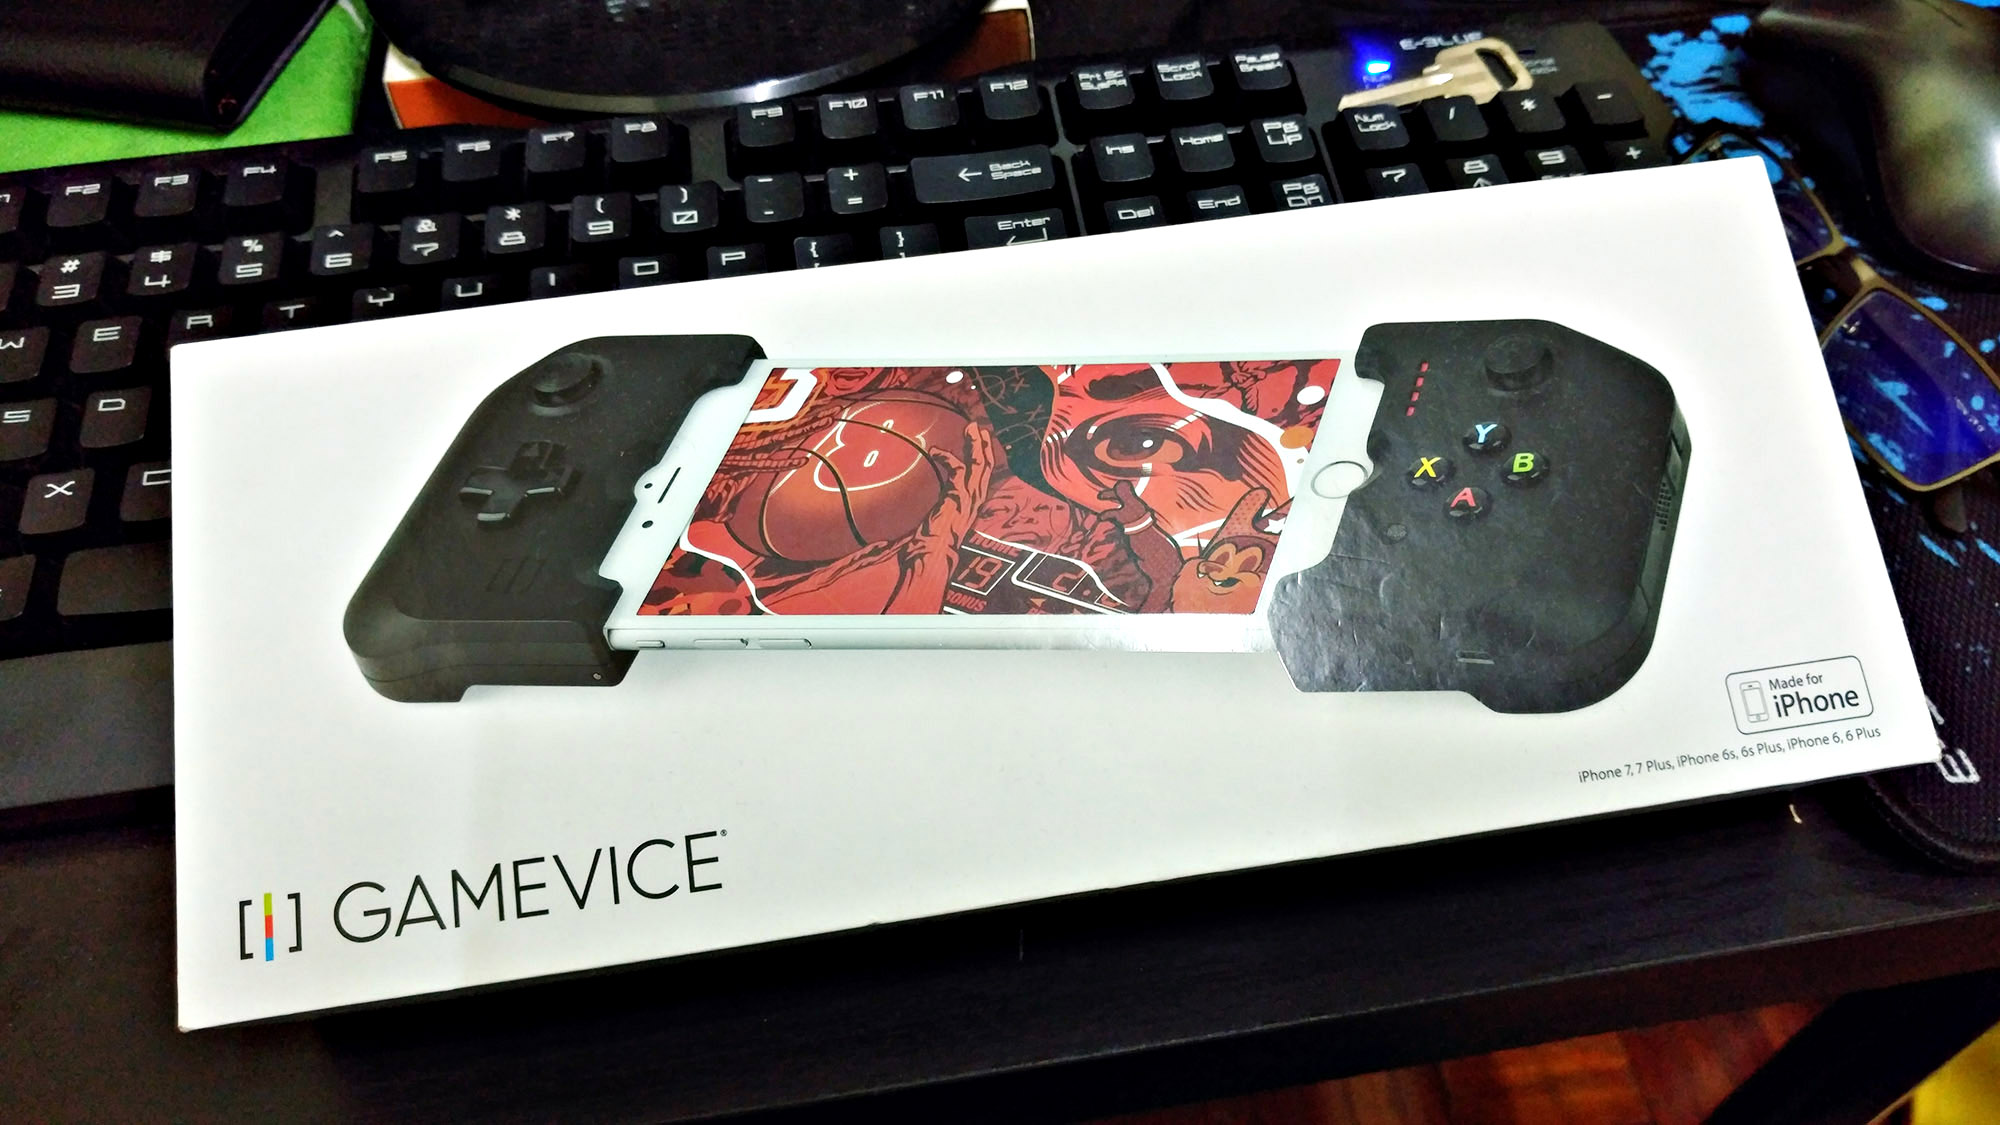 iPhone Gamers Will Love This Gamevice Deck